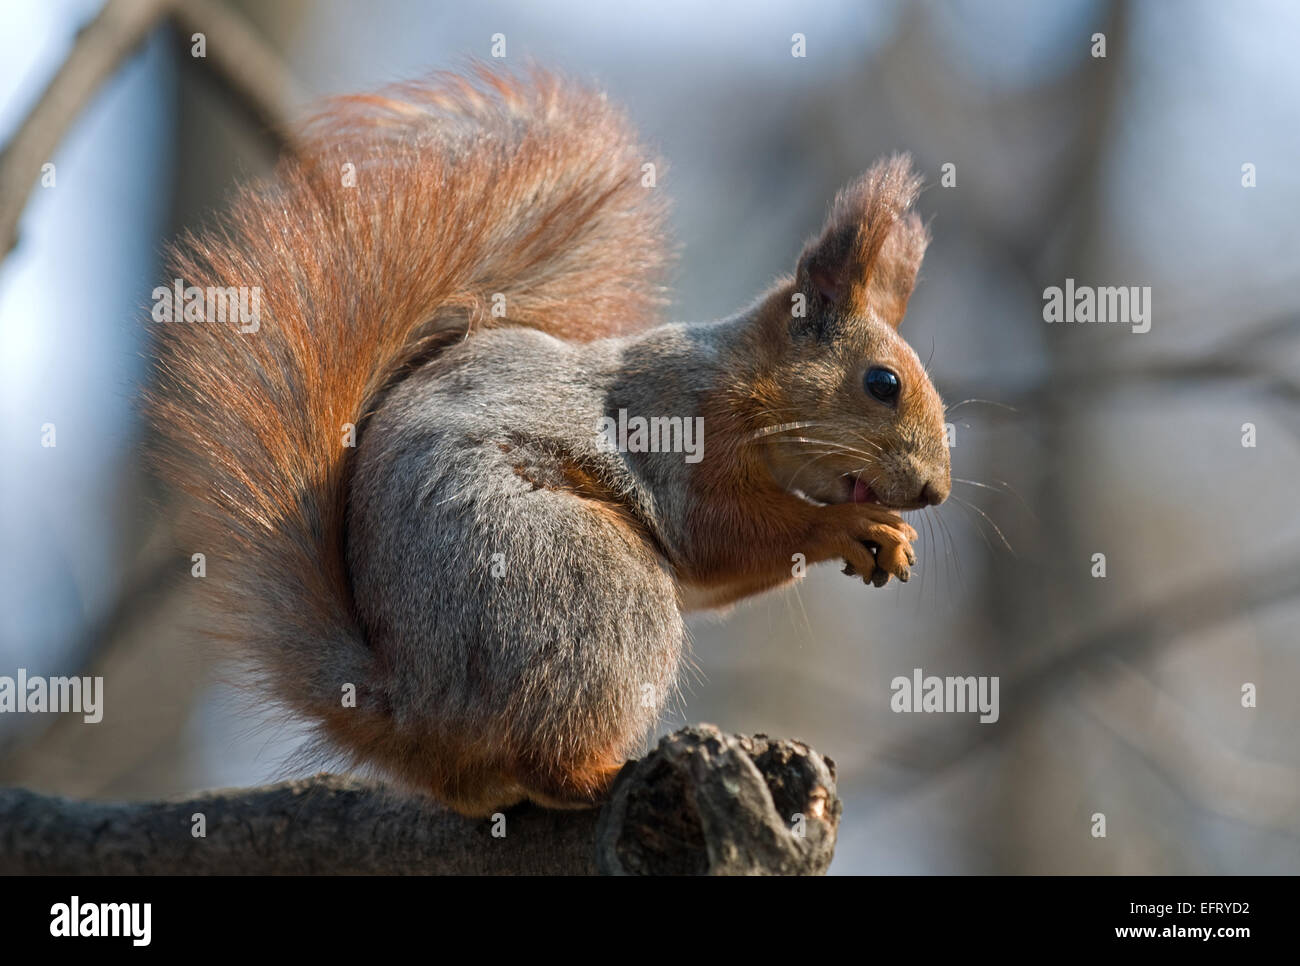 Bushy squirrel puts its talons together and sits on the branch. Squirrel's pelage is red and gray. - Stock Image